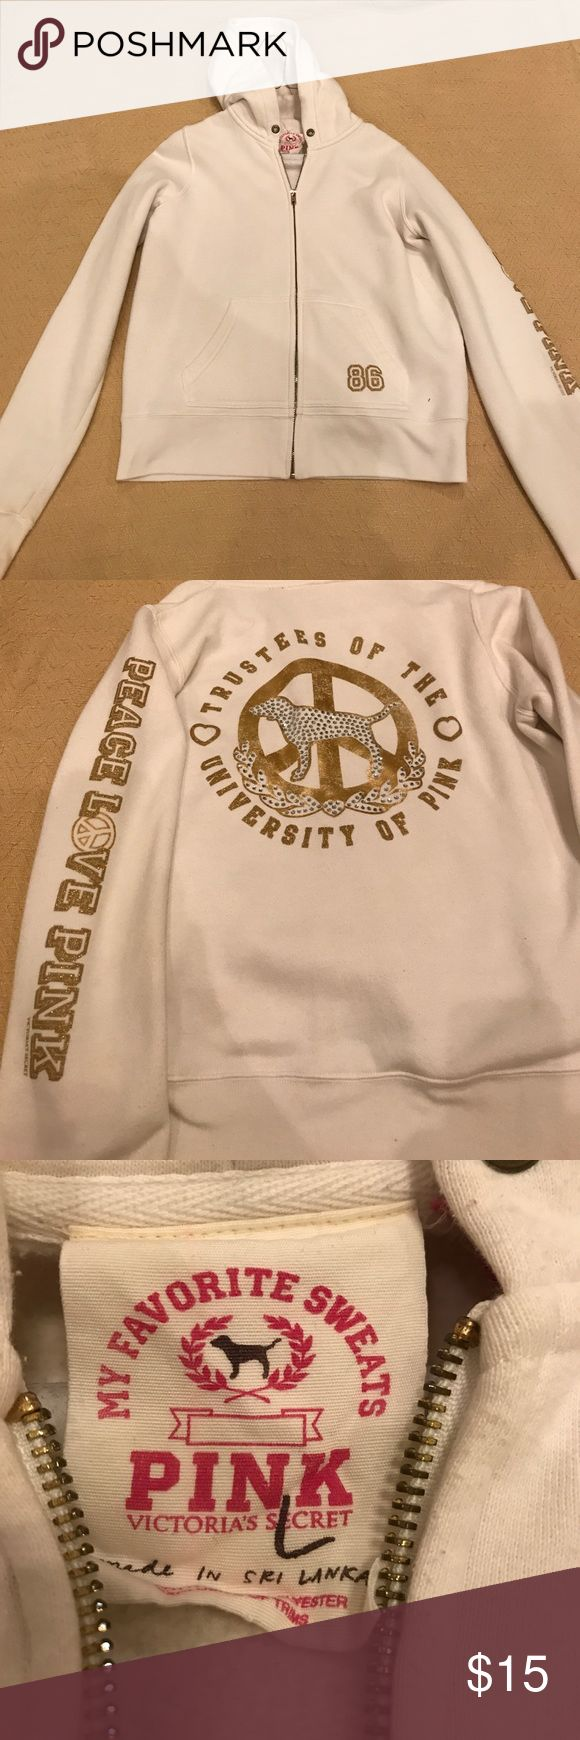 Victoria's Secret PINK Zip Up Hoodie This is an off white Victoria's Secret PINK Zip Up Hoodie. The writing and pictures on the hoodie are gold. There are also rhinestones on the jacket. This hoodie has been worn. PINK Victoria's Secret Jackets & Coats